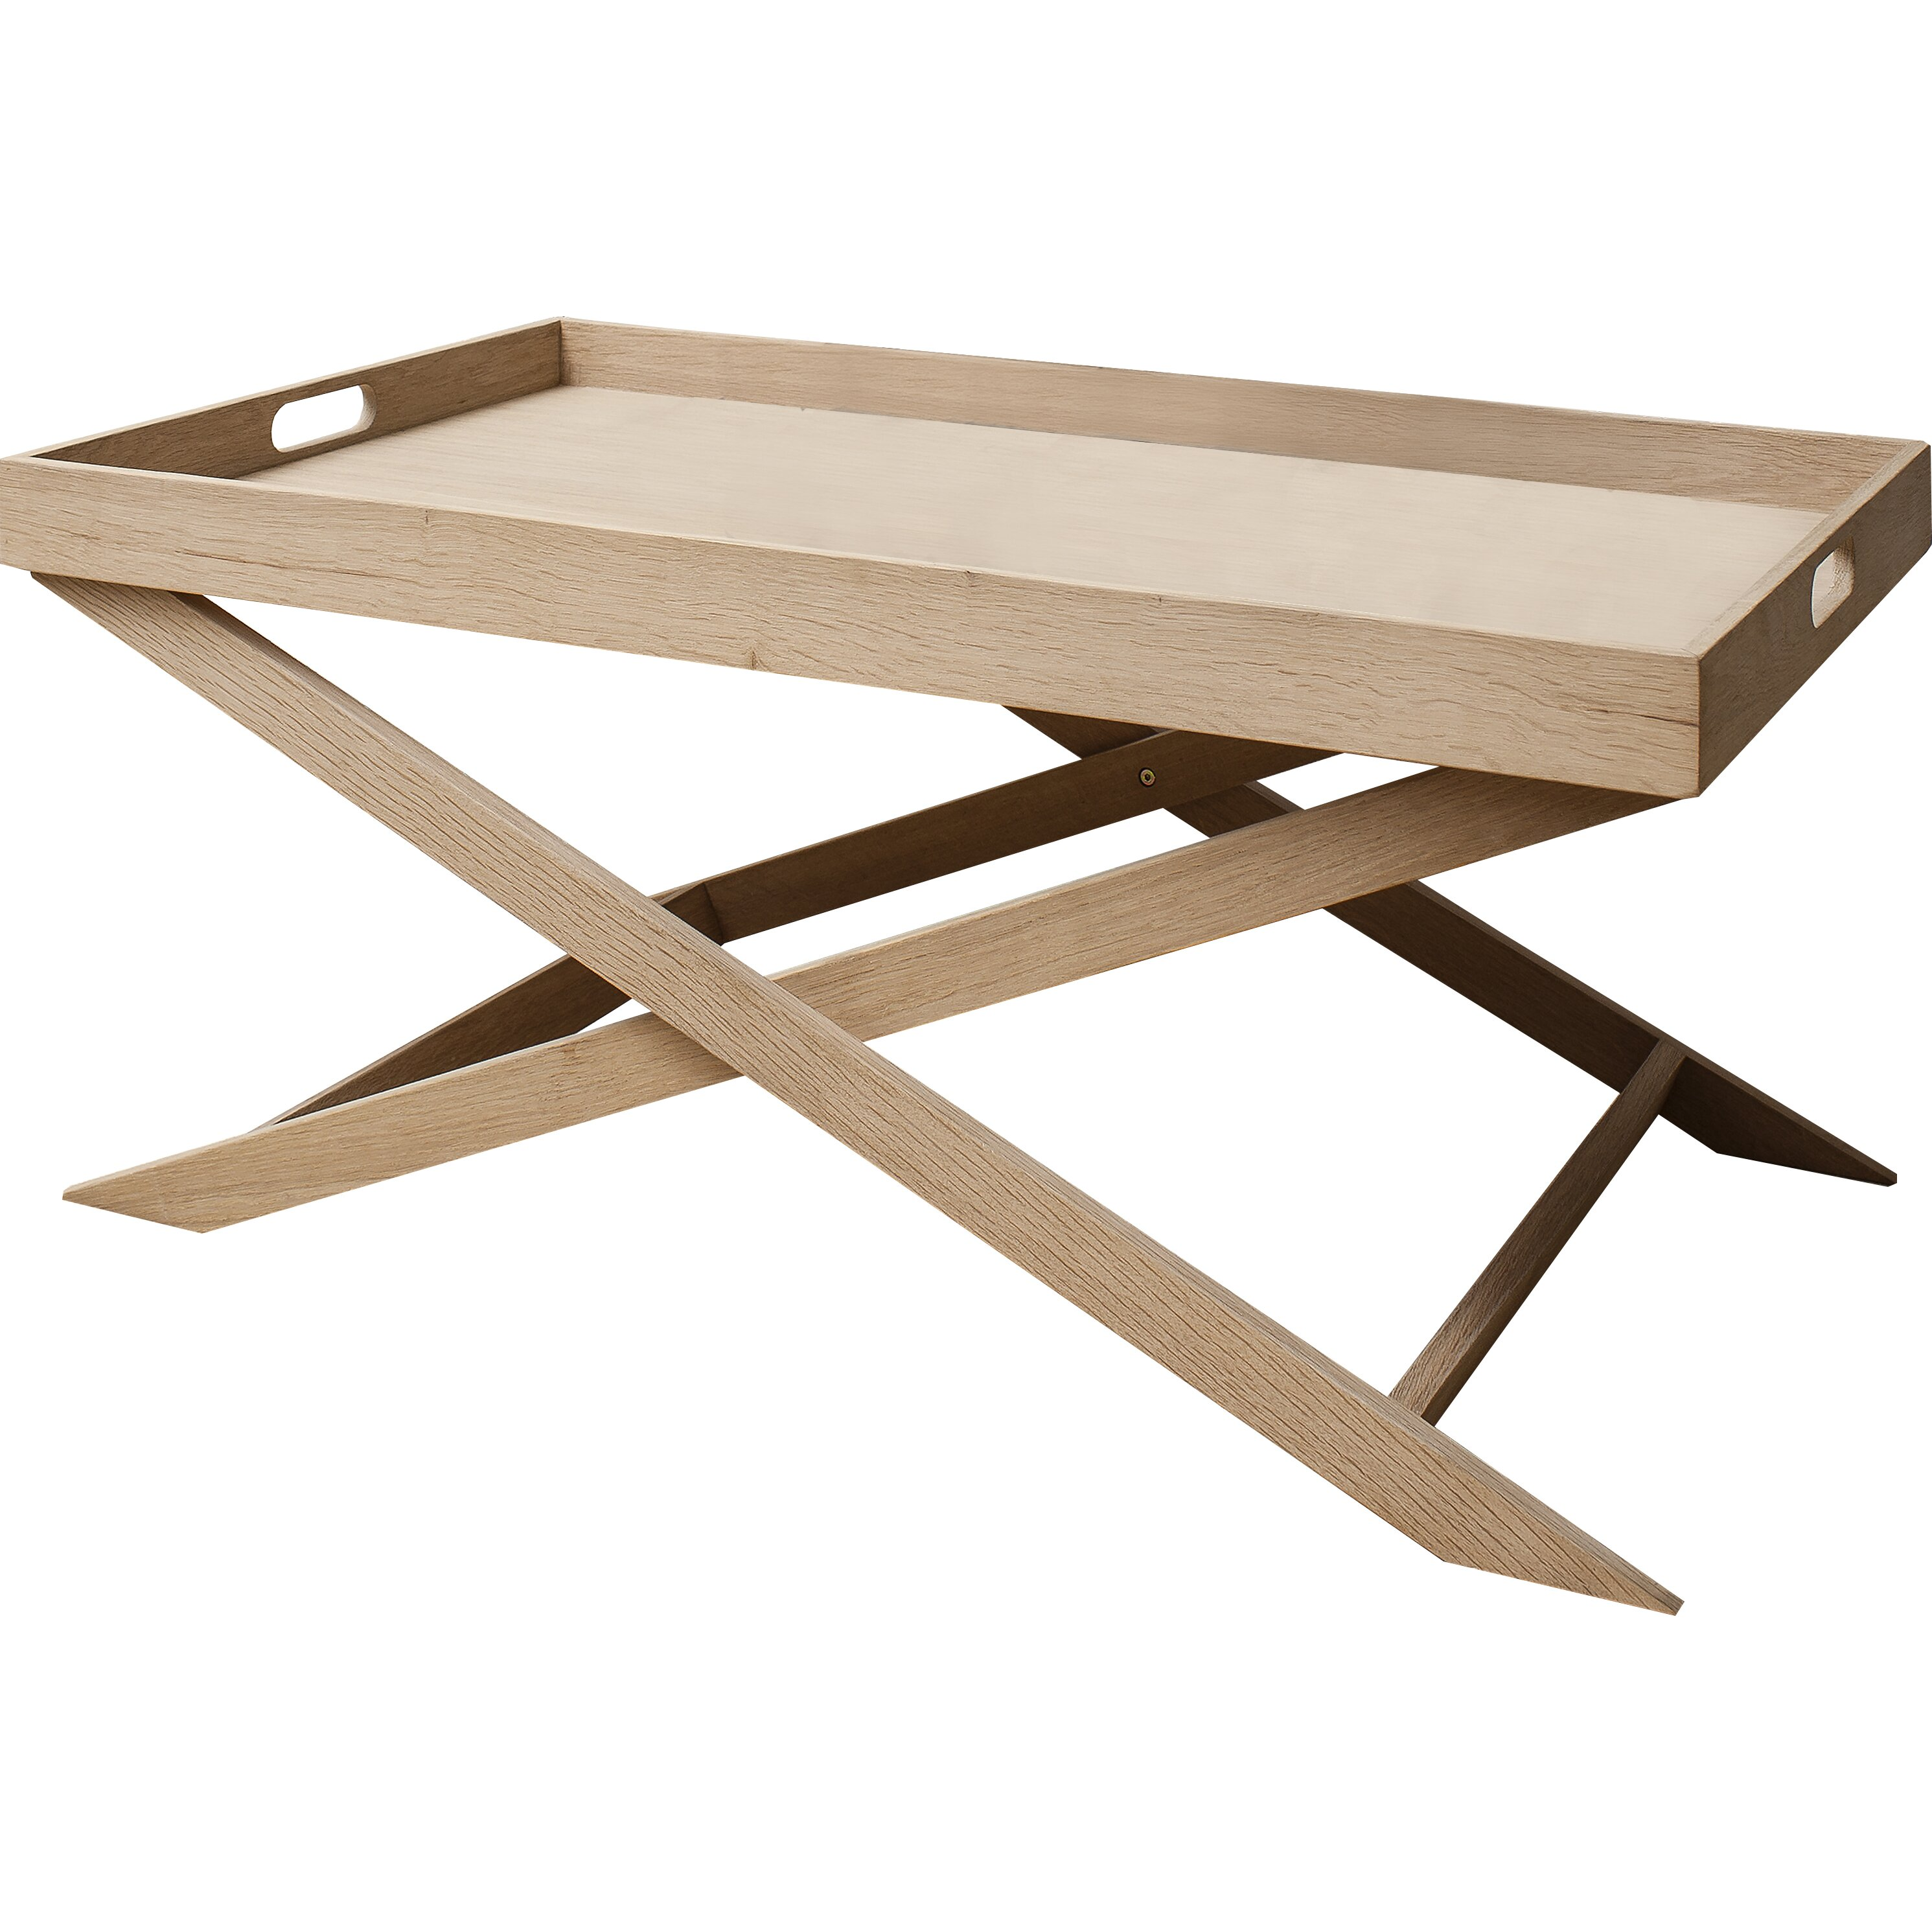 Coffee Table With Tray Top: Gallery Dalton Butlers Coffee Table With Tray Top